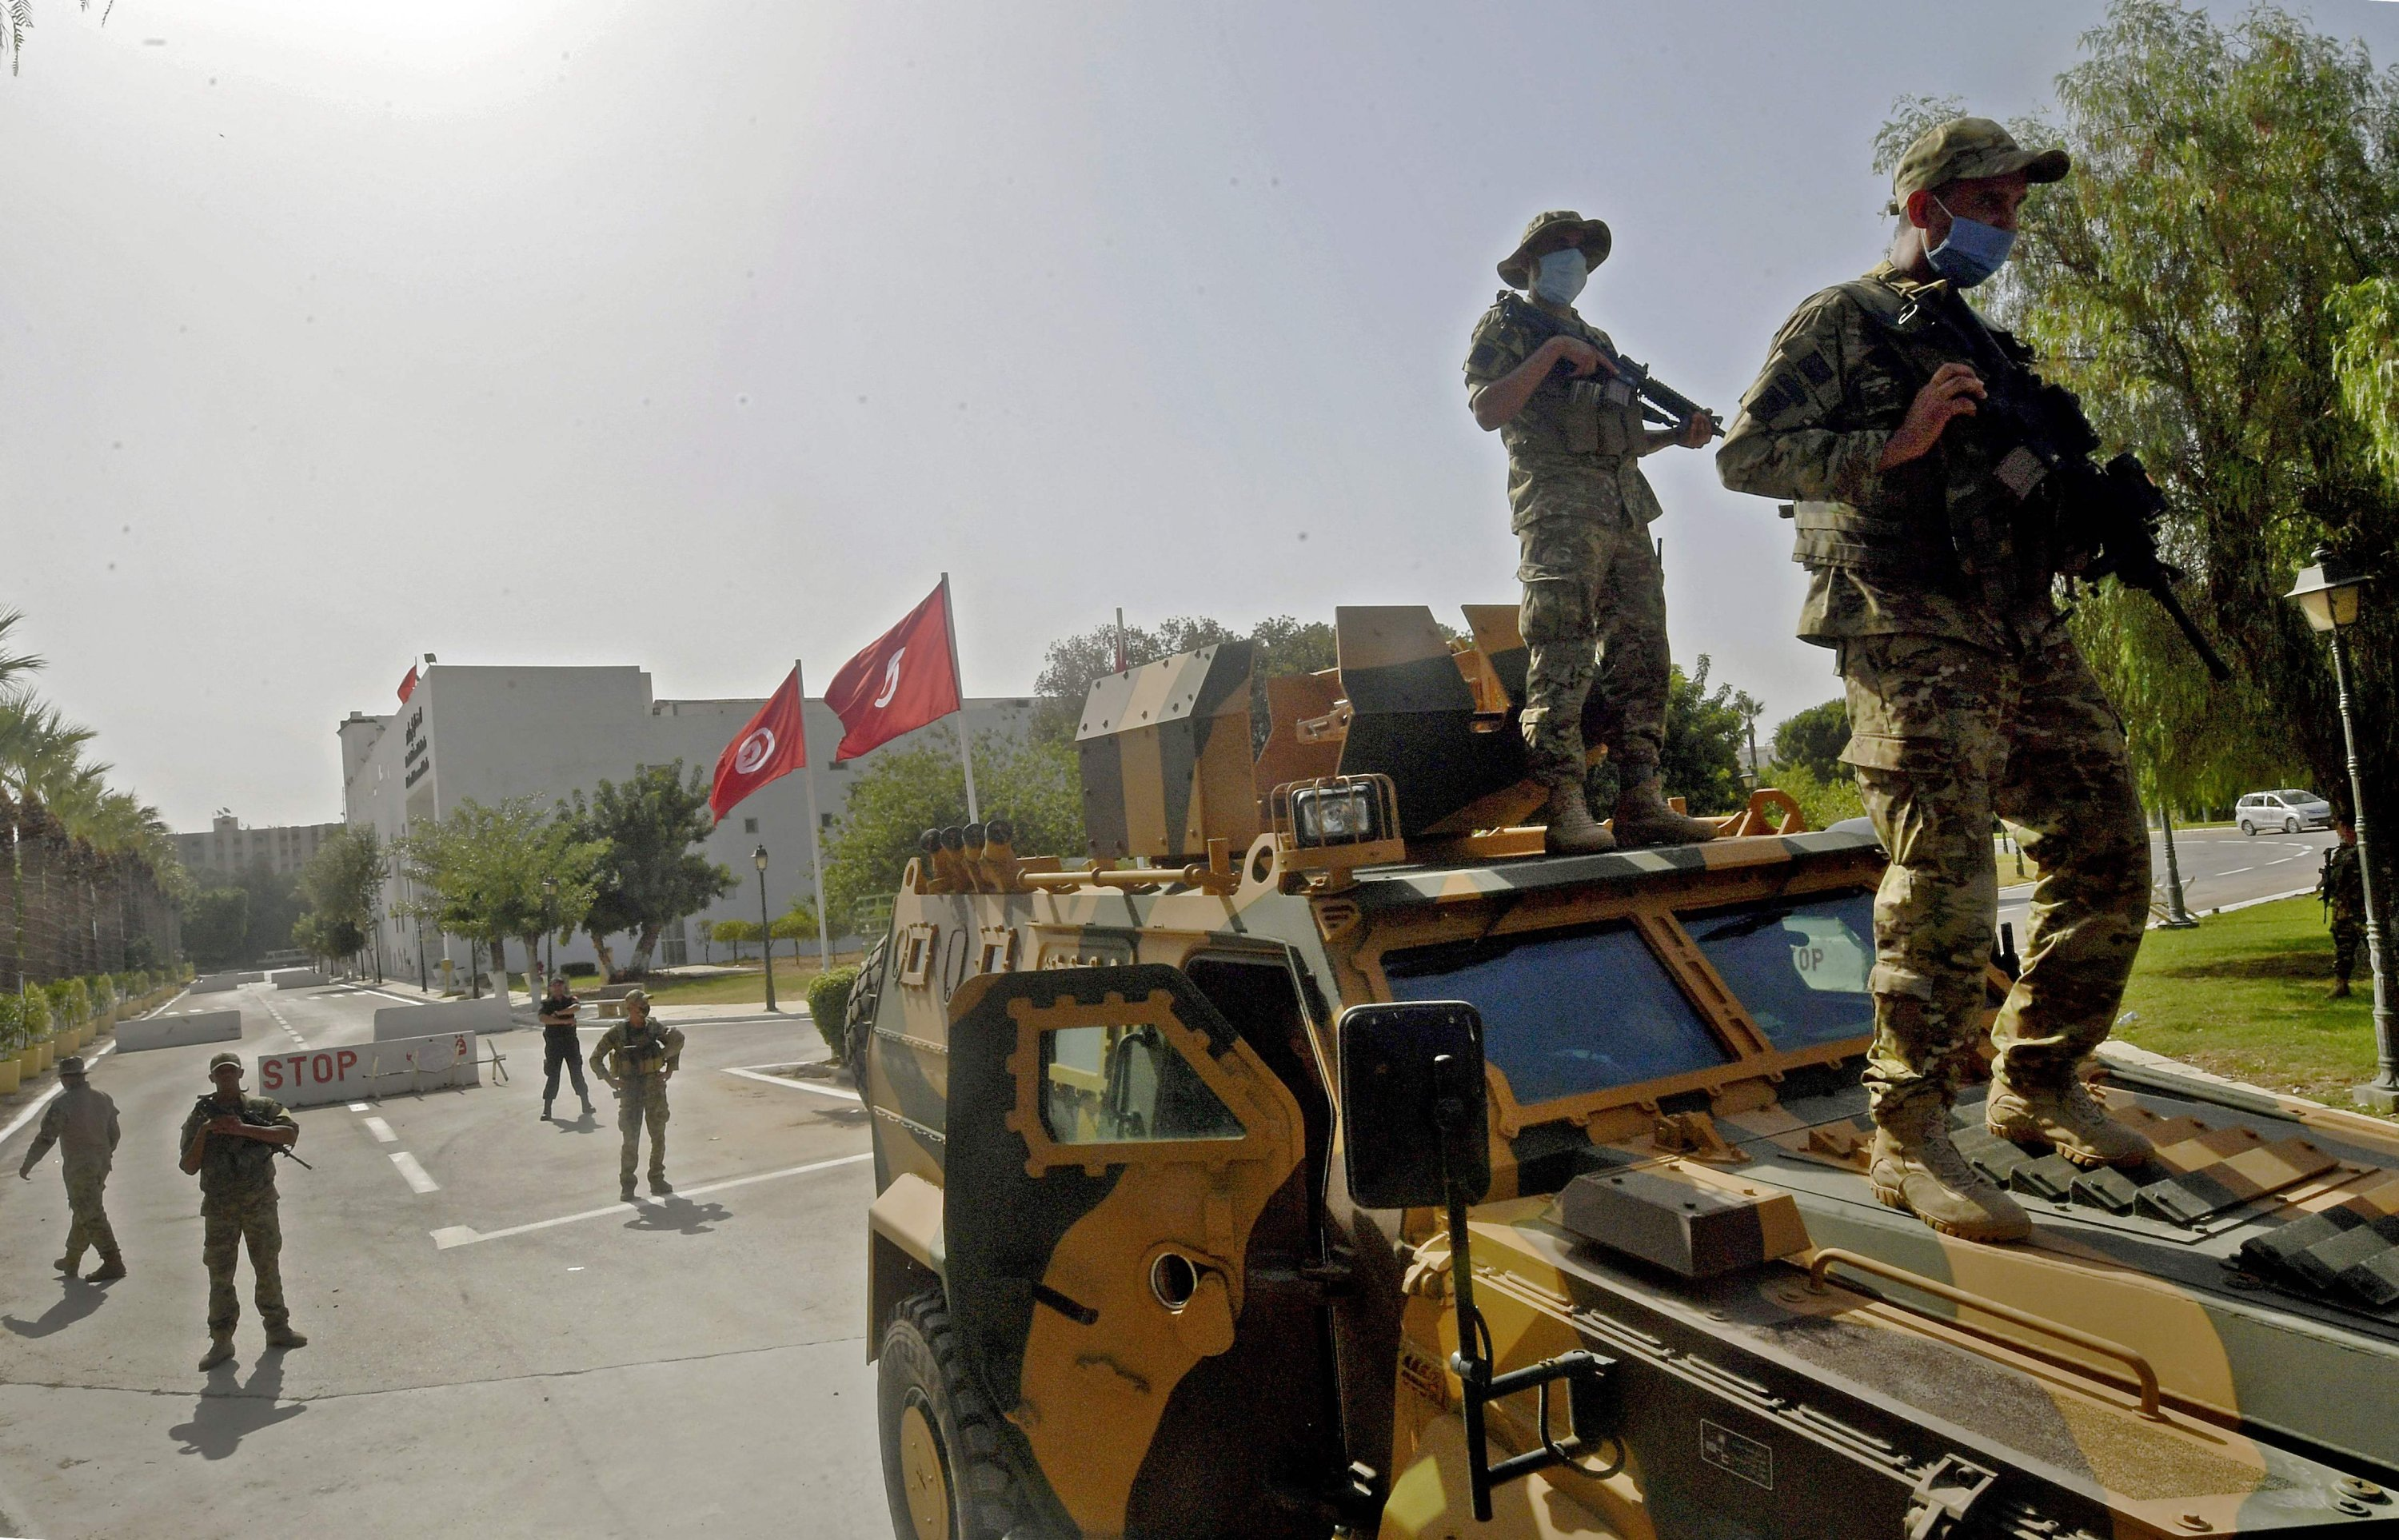 Tunisian military forces guard the area around the parliament building in the capital Tunis, Tunisia, on July 26, 2021. (AFP Photo)